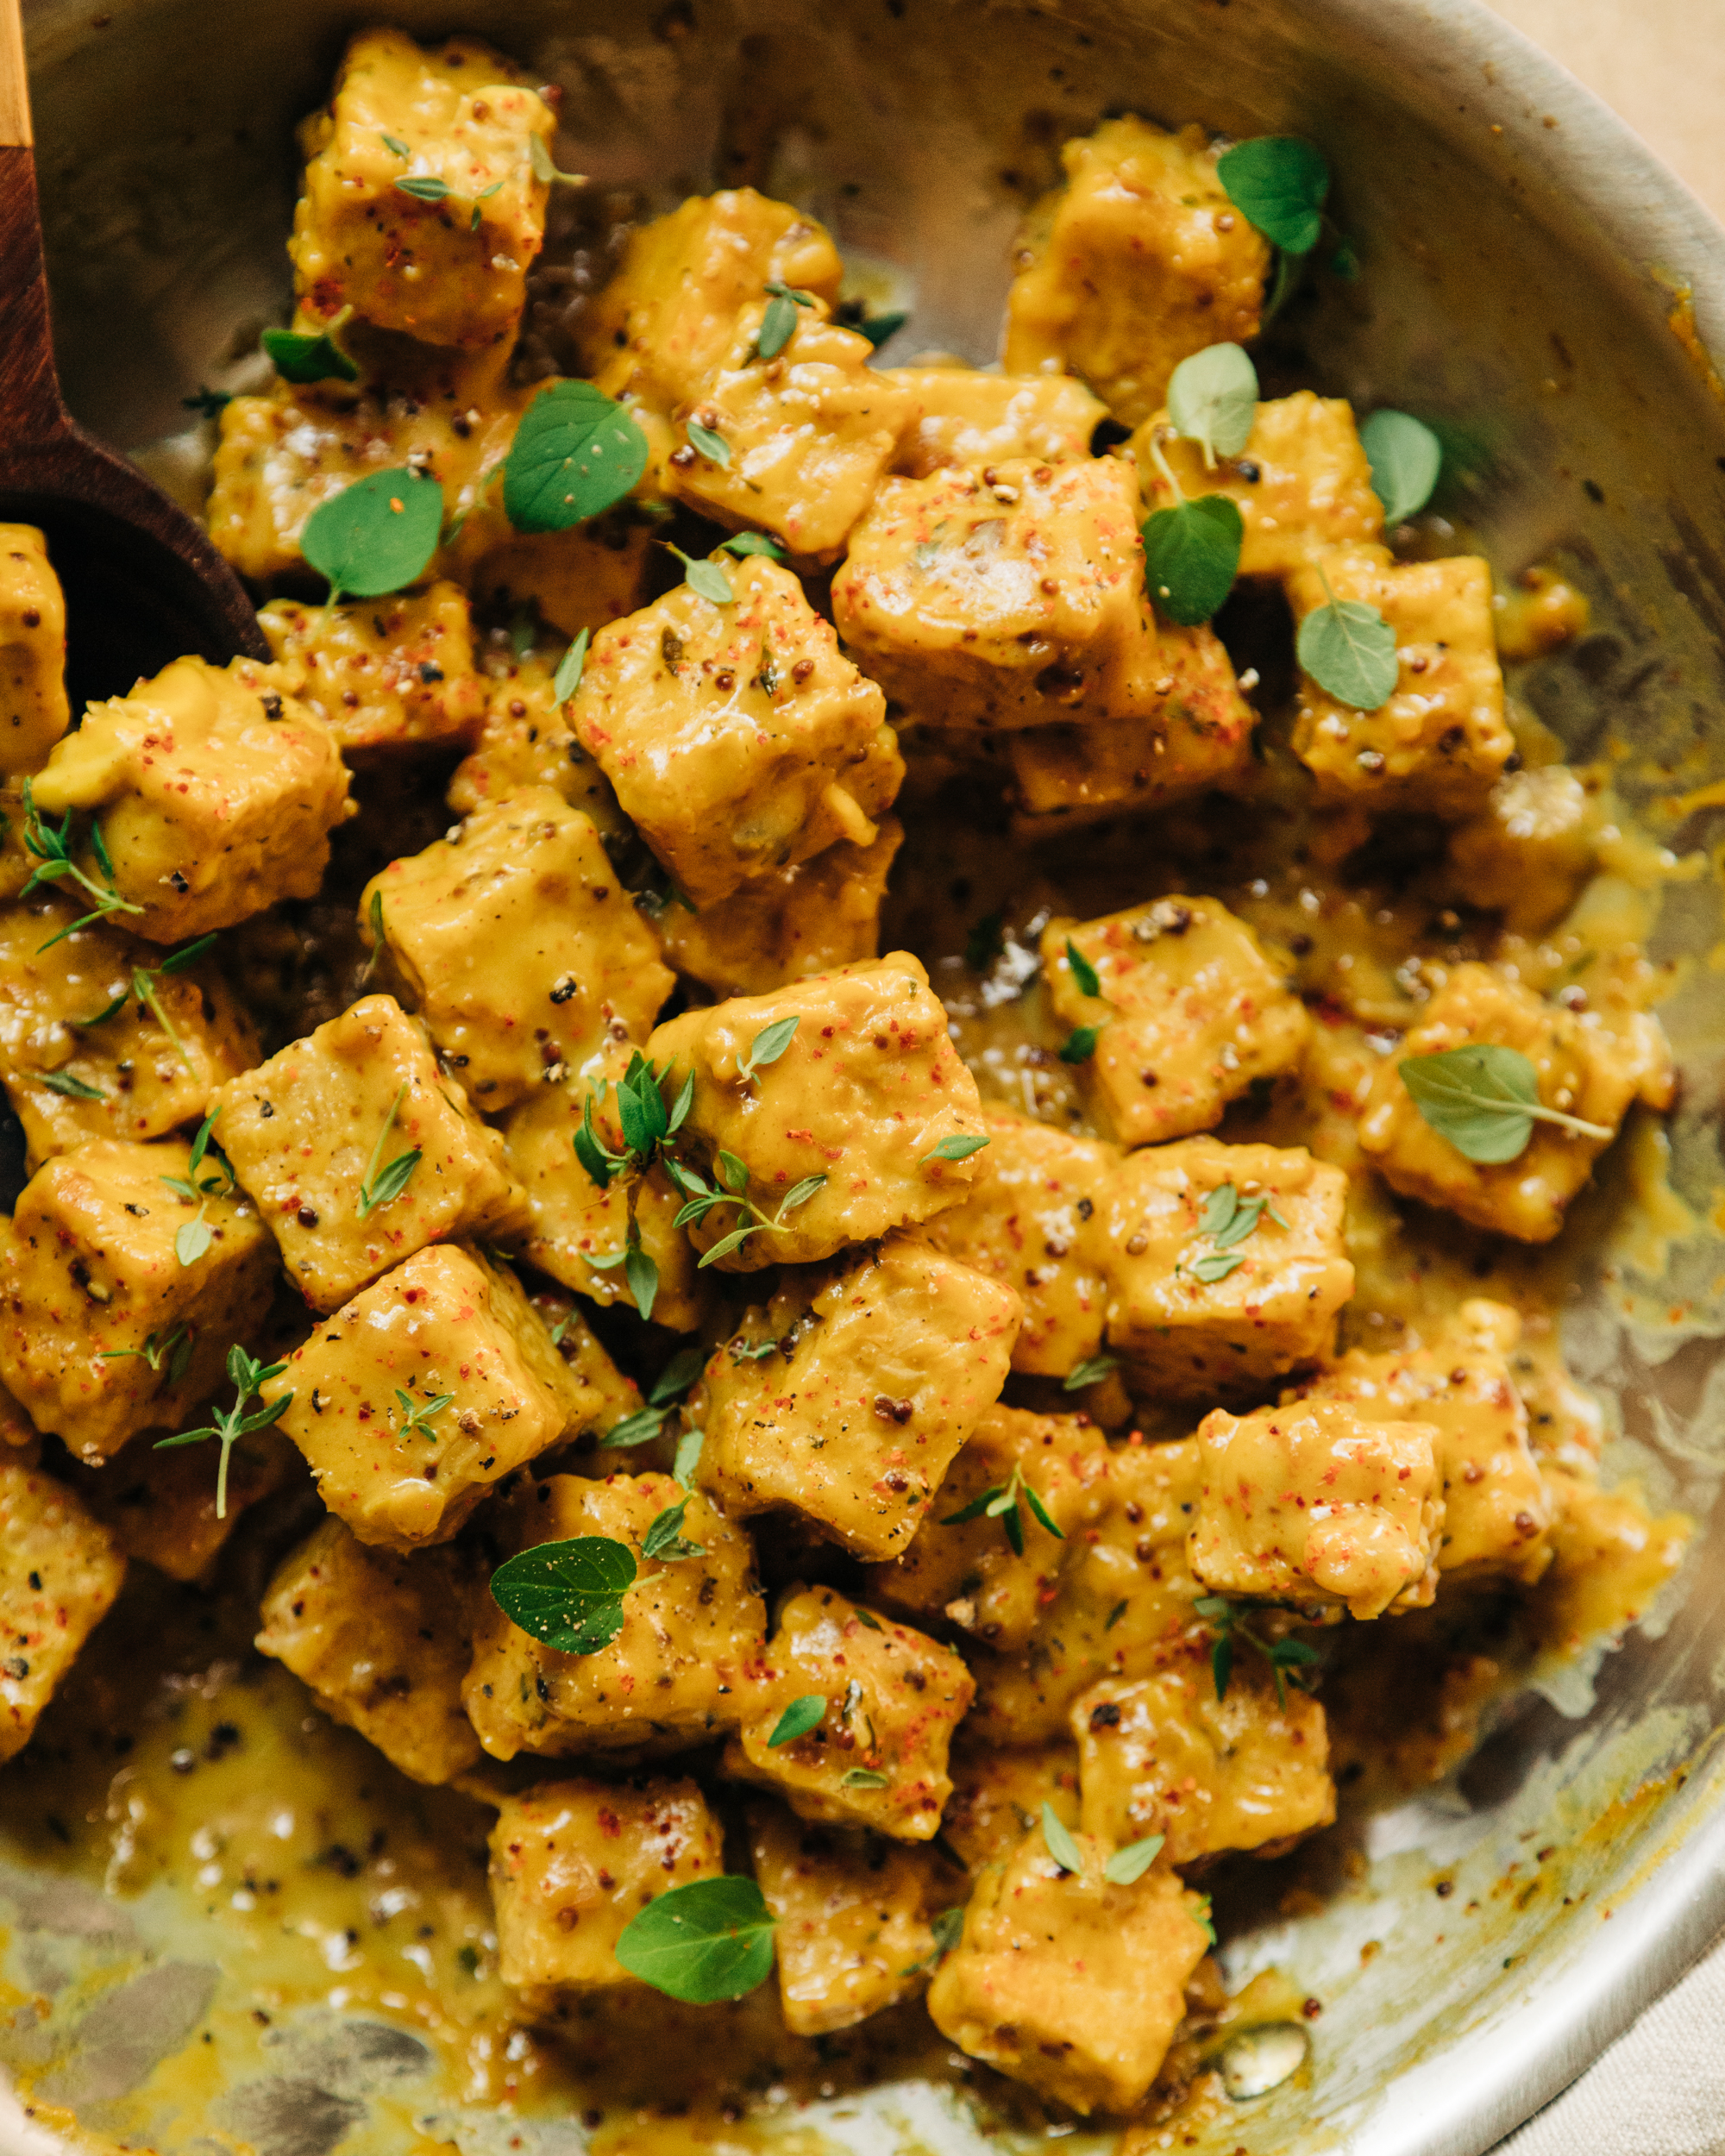 An up close, overhead shot of saucy chunks of maple mustard tempeh in a skillet. The sauce is golden yellow and the tempeh is garnished with fresh thyme and oregano leaves.